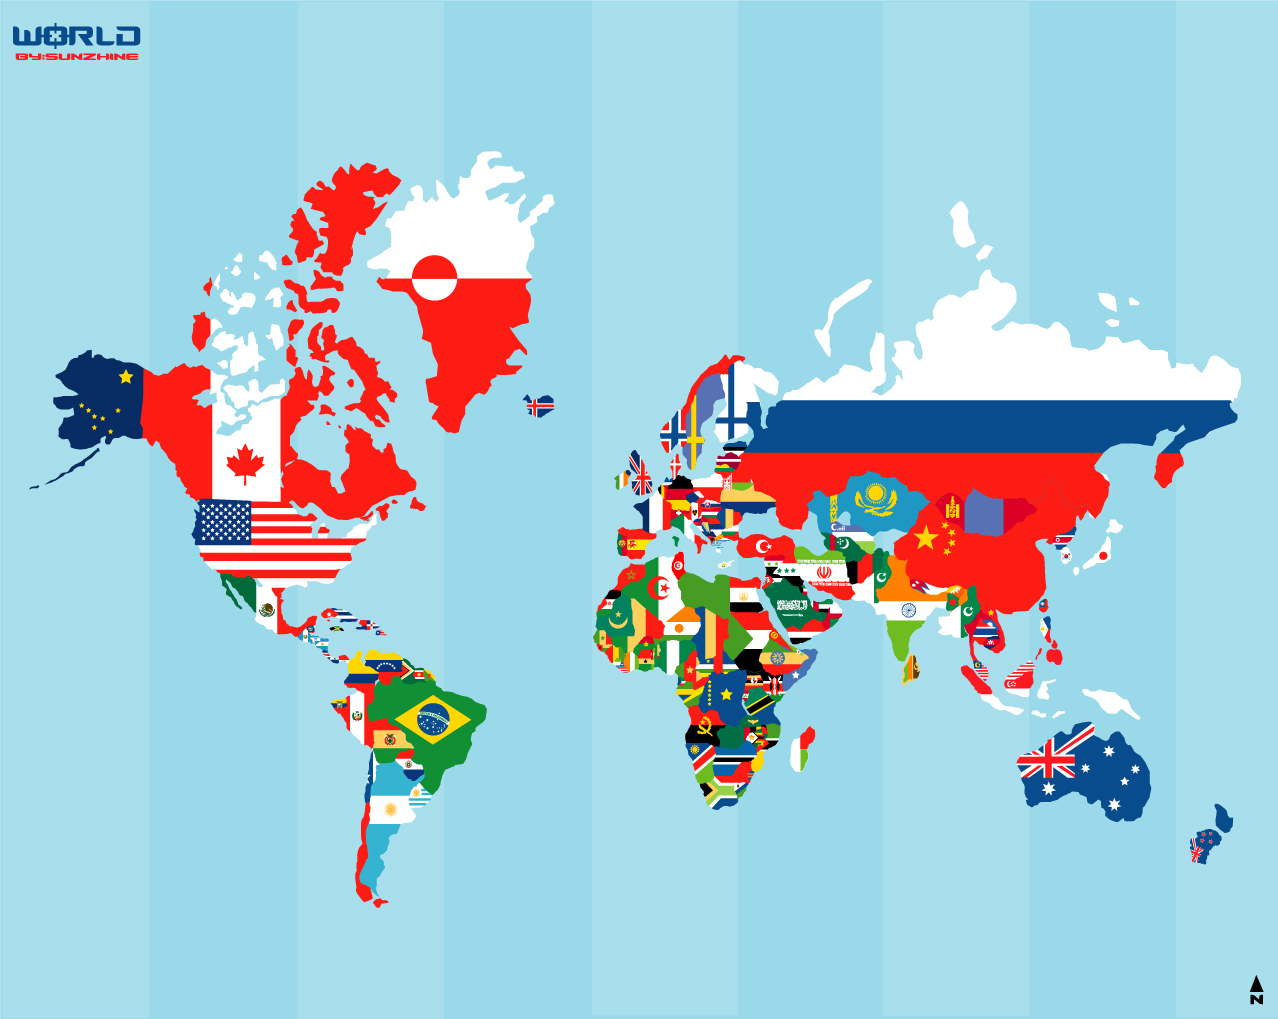 Beyond the nation state martijn jeroen van der linden recently i came across a map of flags gumiabroncs Images